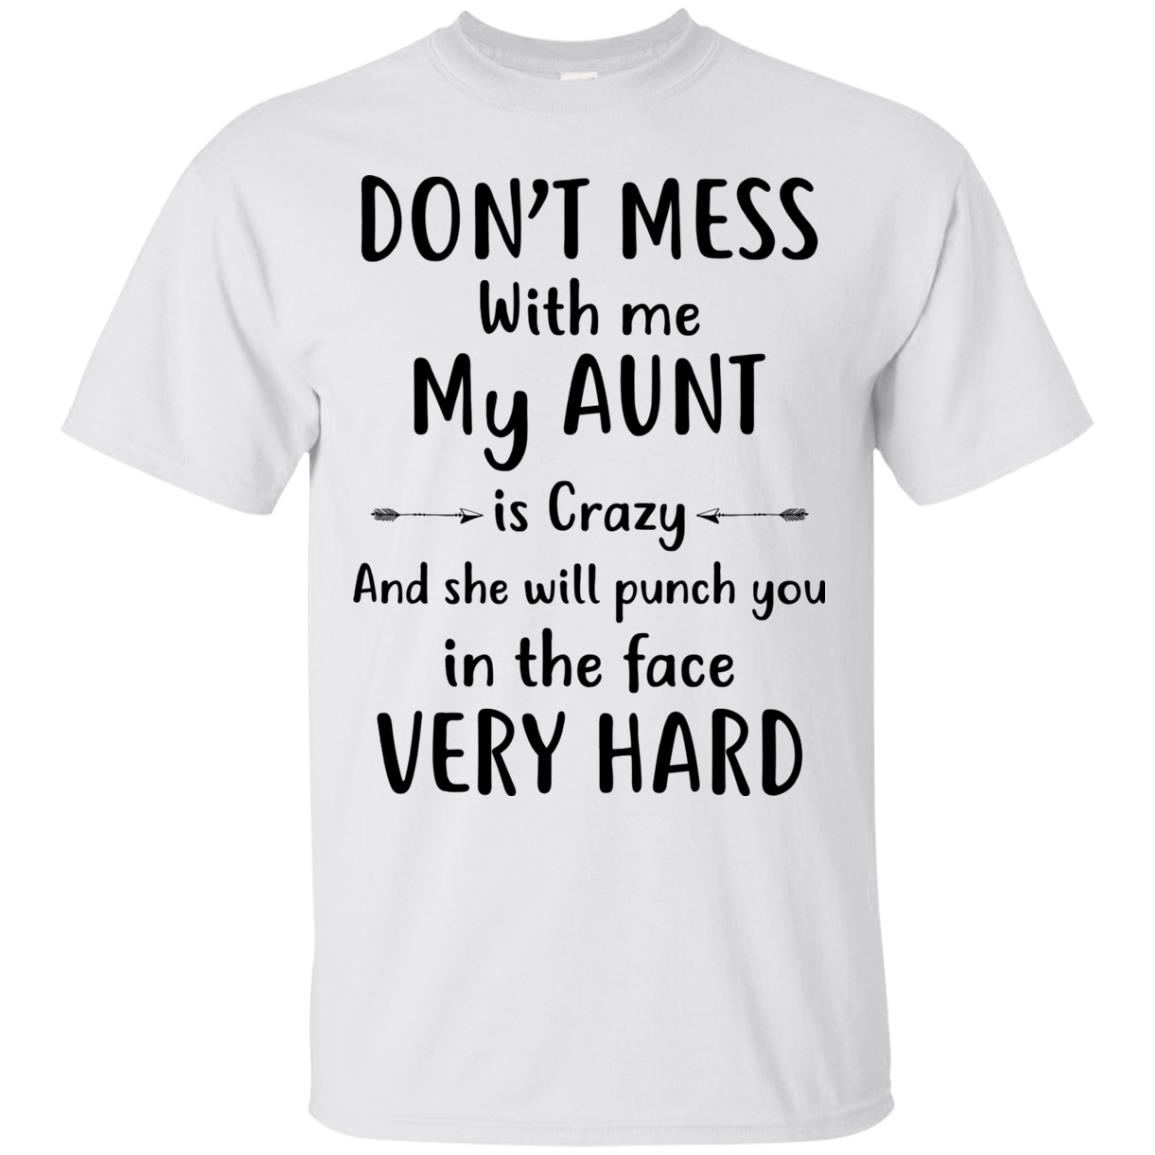 Don't mess with me my Aunt is crazy and she will punch you in the face very  hard t shirt, long sleeve, hoodie